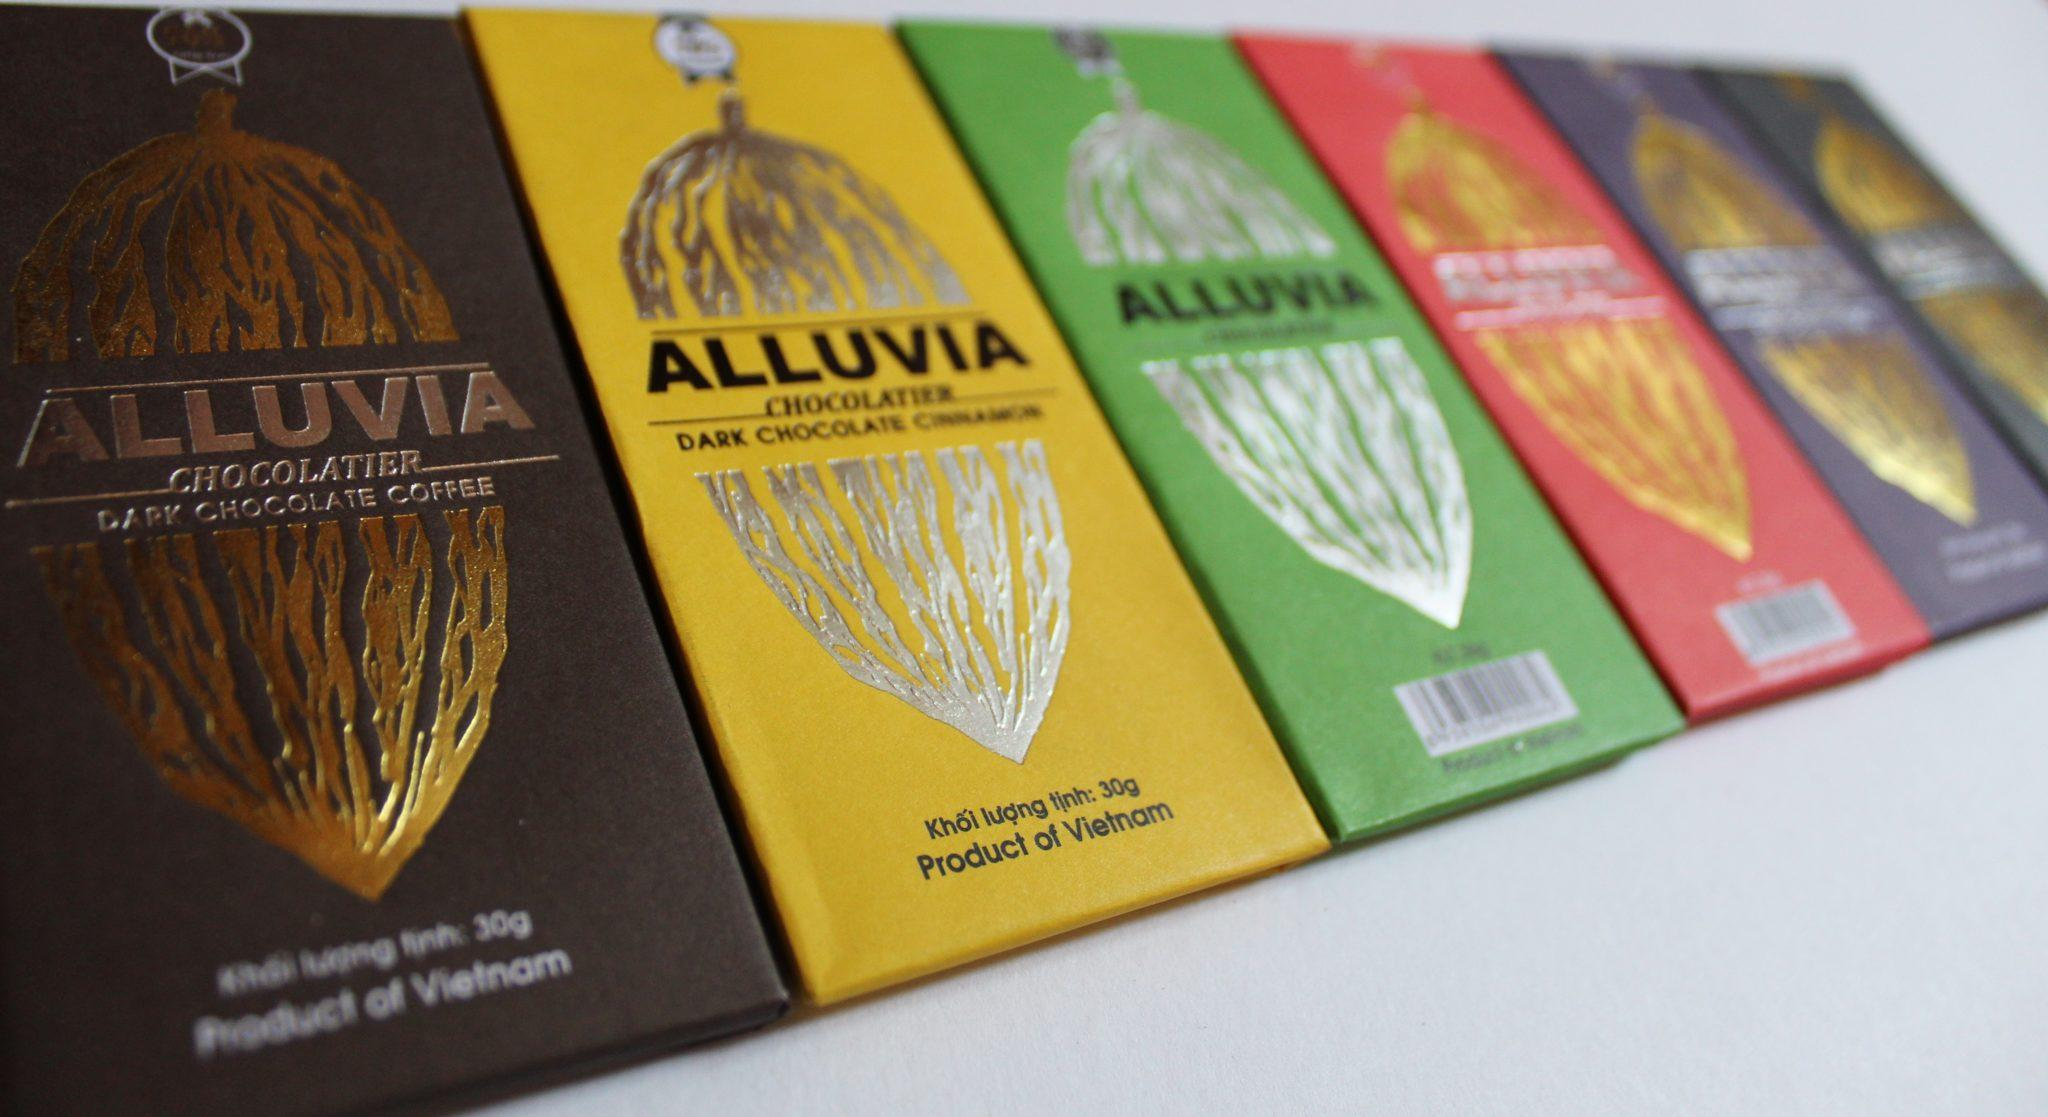 Saigon Vietnam Chocolate Guide Alluvia Chocolatier Chocolate Bars